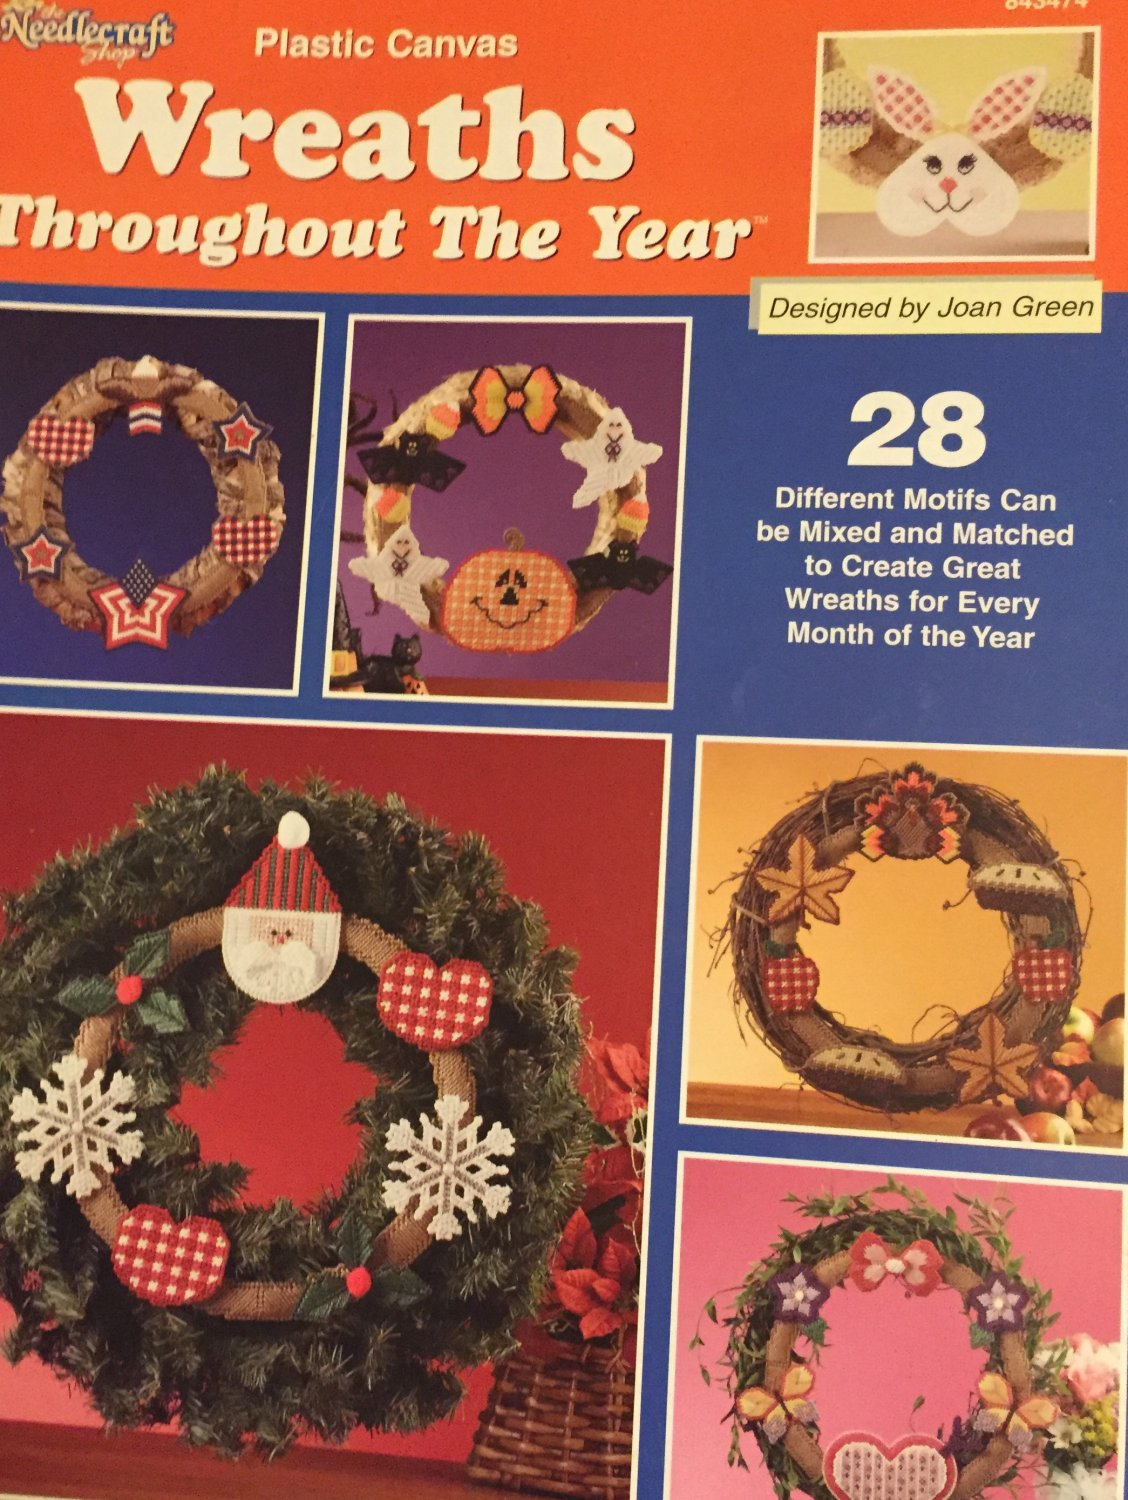 Wreaths Throughout the Year Plastic Canvas Pattern The Needlecraft Shop 843474